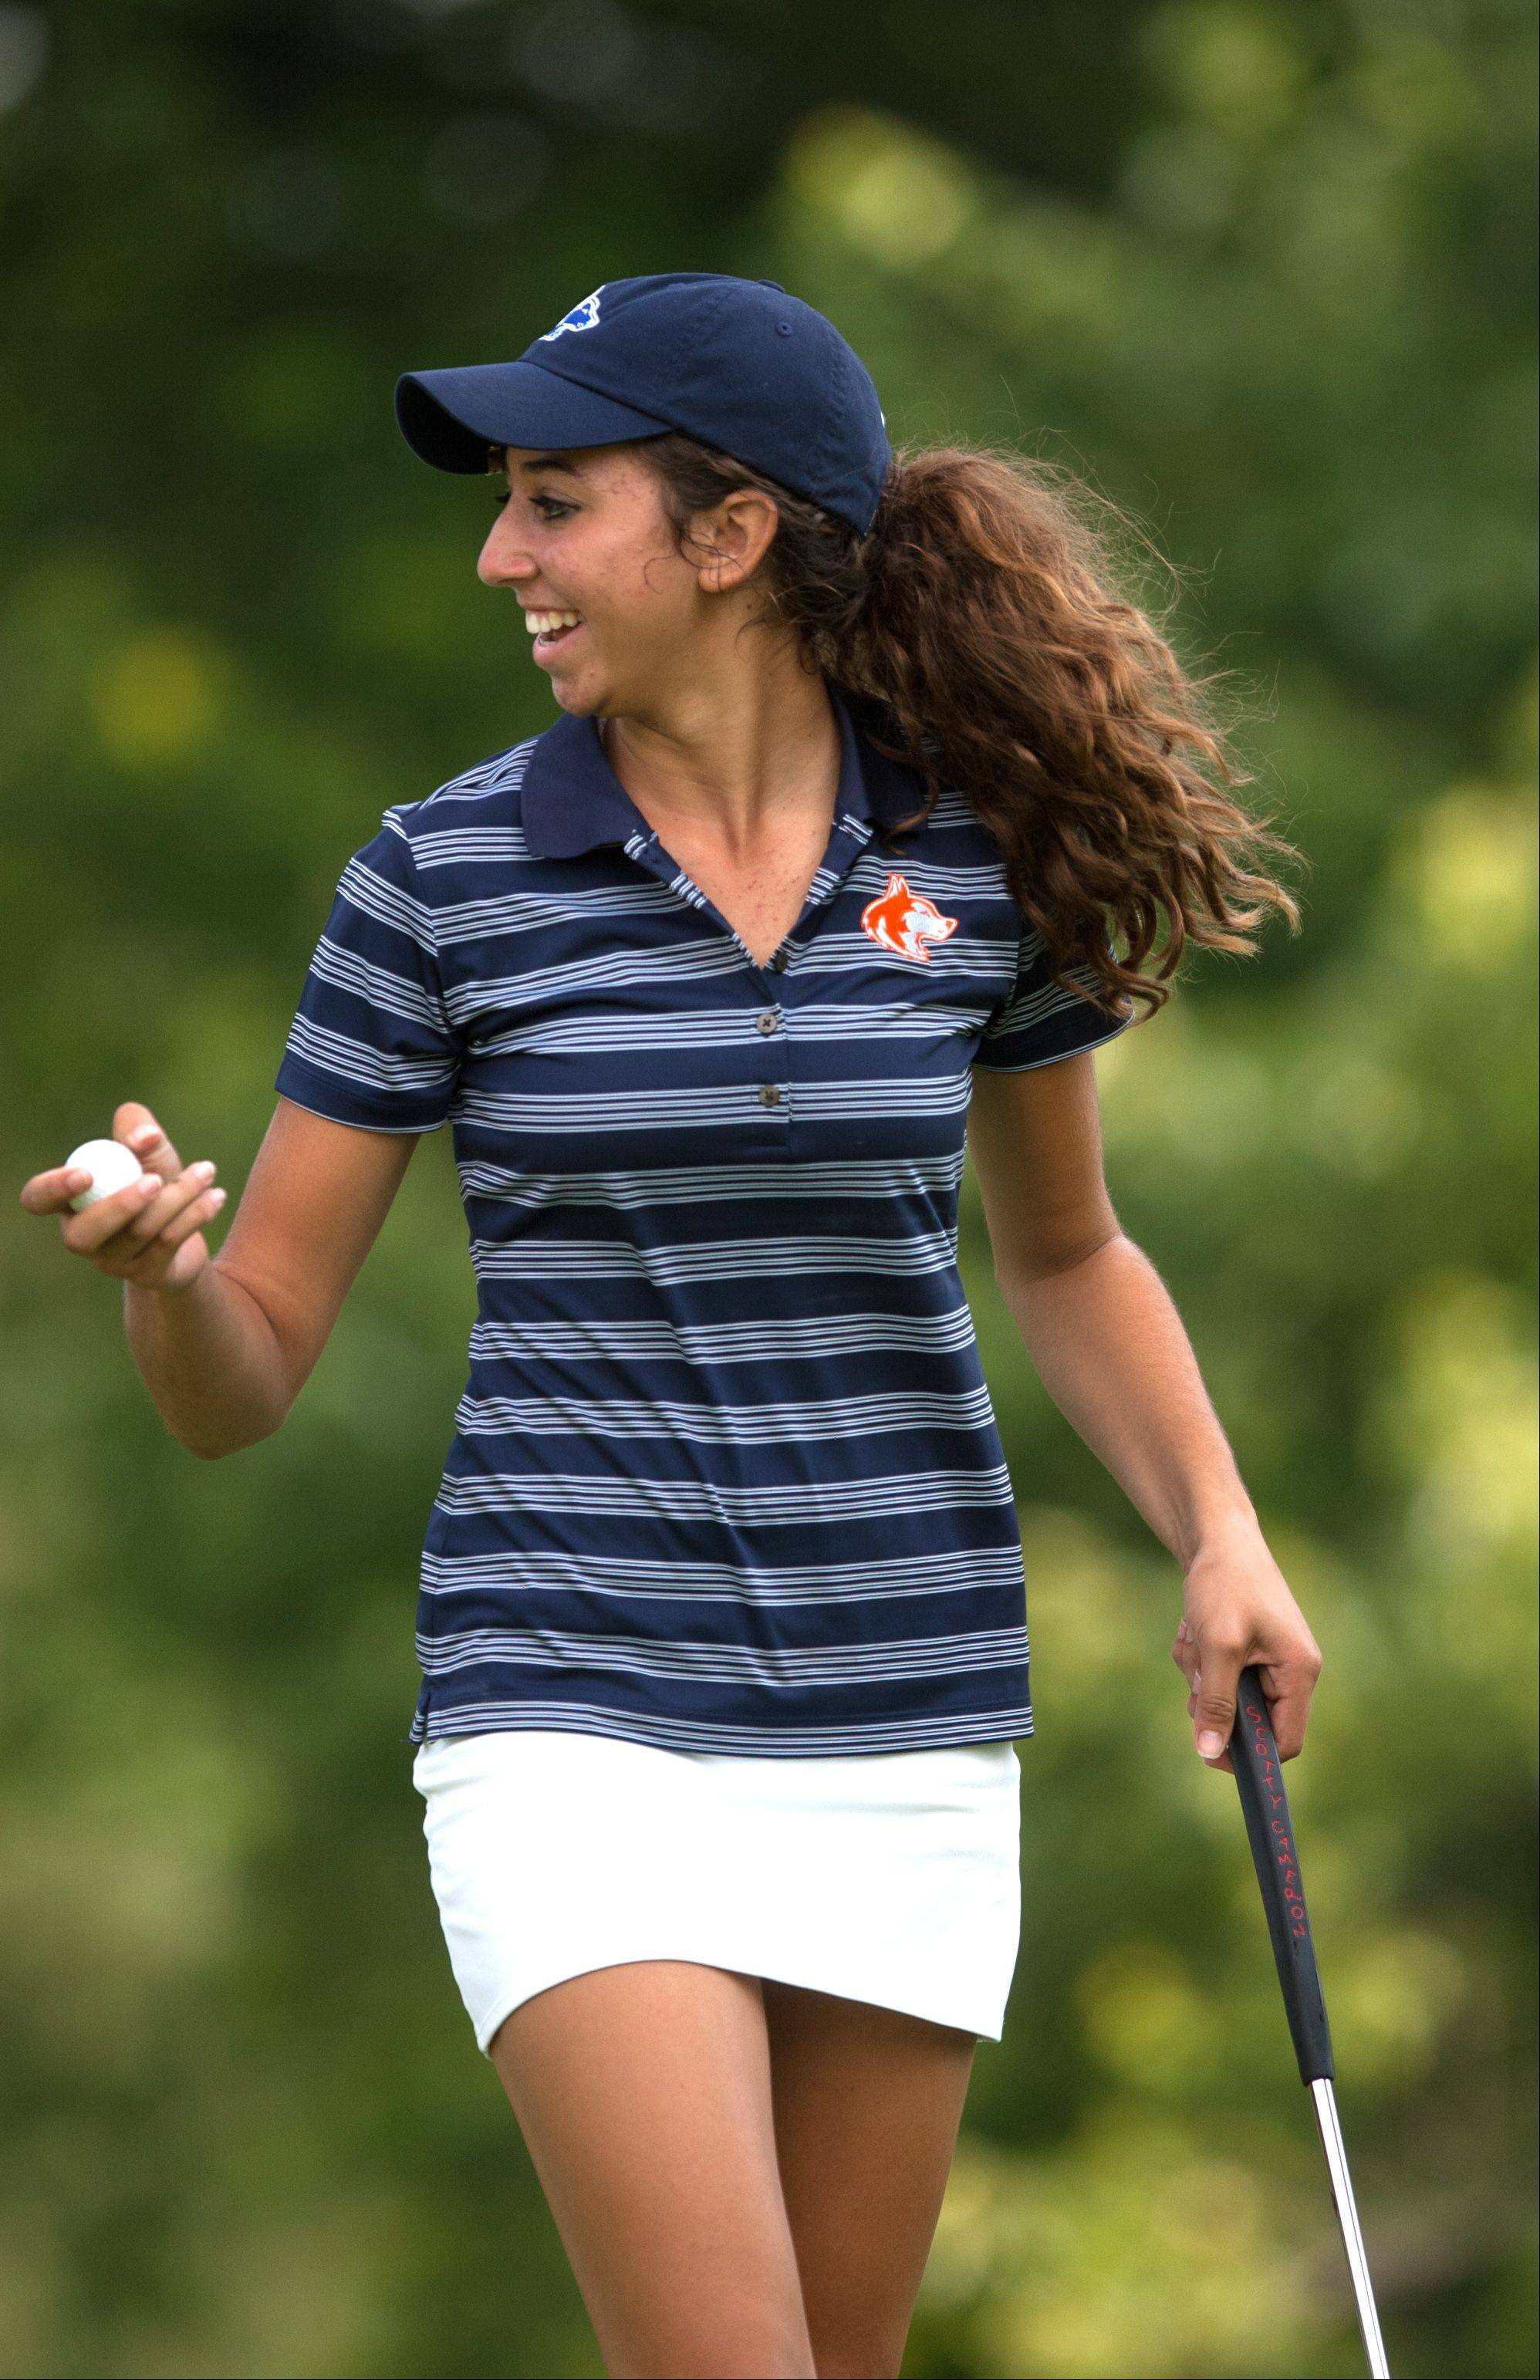 Taylor Arenson of Naperville North reacts to her putt, during the 2013 Vern McGonagle Memorial boys and girls golf invitational at the Naperville Country Club.